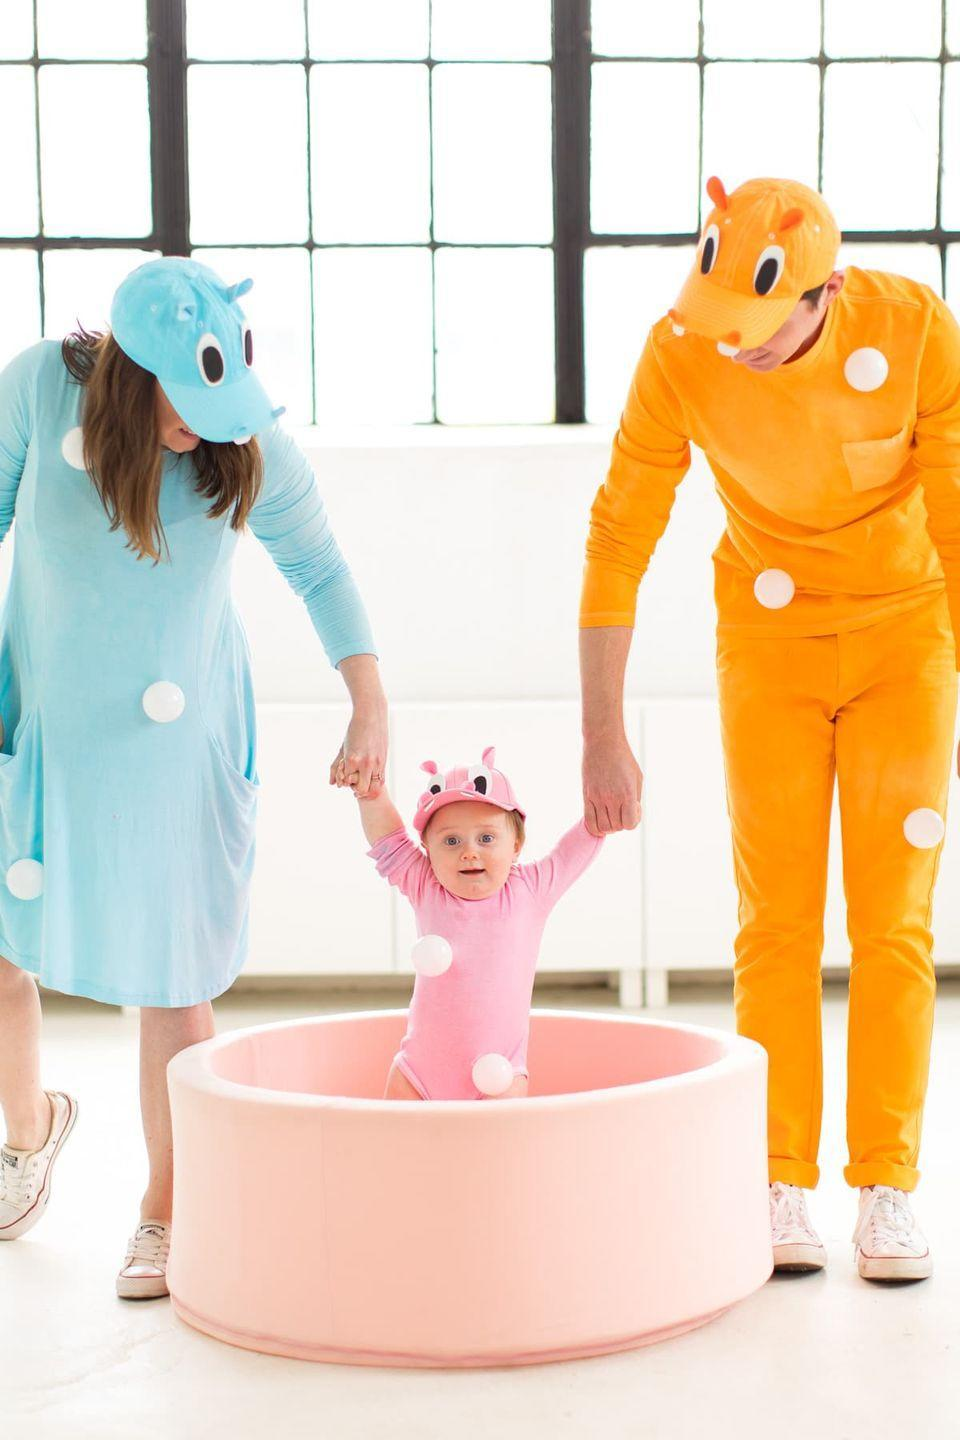 """<p>Re-create the classic game in an absolutely adorable way. How cute will your little one look dressed up as a hippo?</p><p><strong>Get the tutorial <a href=""""https://sugarandcloth.com/our-family-diy-hungry-hippos-costume-idea/"""" rel=""""nofollow noopener"""" target=""""_blank"""" data-ylk=""""slk:Sugar & Cloth"""" class=""""link rapid-noclick-resp"""">Sugar & Cloth</a>.</strong></p><p><strong><a class=""""link rapid-noclick-resp"""" href=""""https://www.amazon.com/Lightaling-100pcs-White-Plastic-Phthalate/dp/B07DWYG2CS/?tag=syn-yahoo-20&ascsubtag=%5Bartid%7C10050.g.29074815%5Bsrc%7Cyahoo-us"""" rel=""""nofollow noopener"""" target=""""_blank"""" data-ylk=""""slk:SHOP PLASTIC BALLS"""">SHOP PLASTIC BALLS</a><br></strong></p>"""